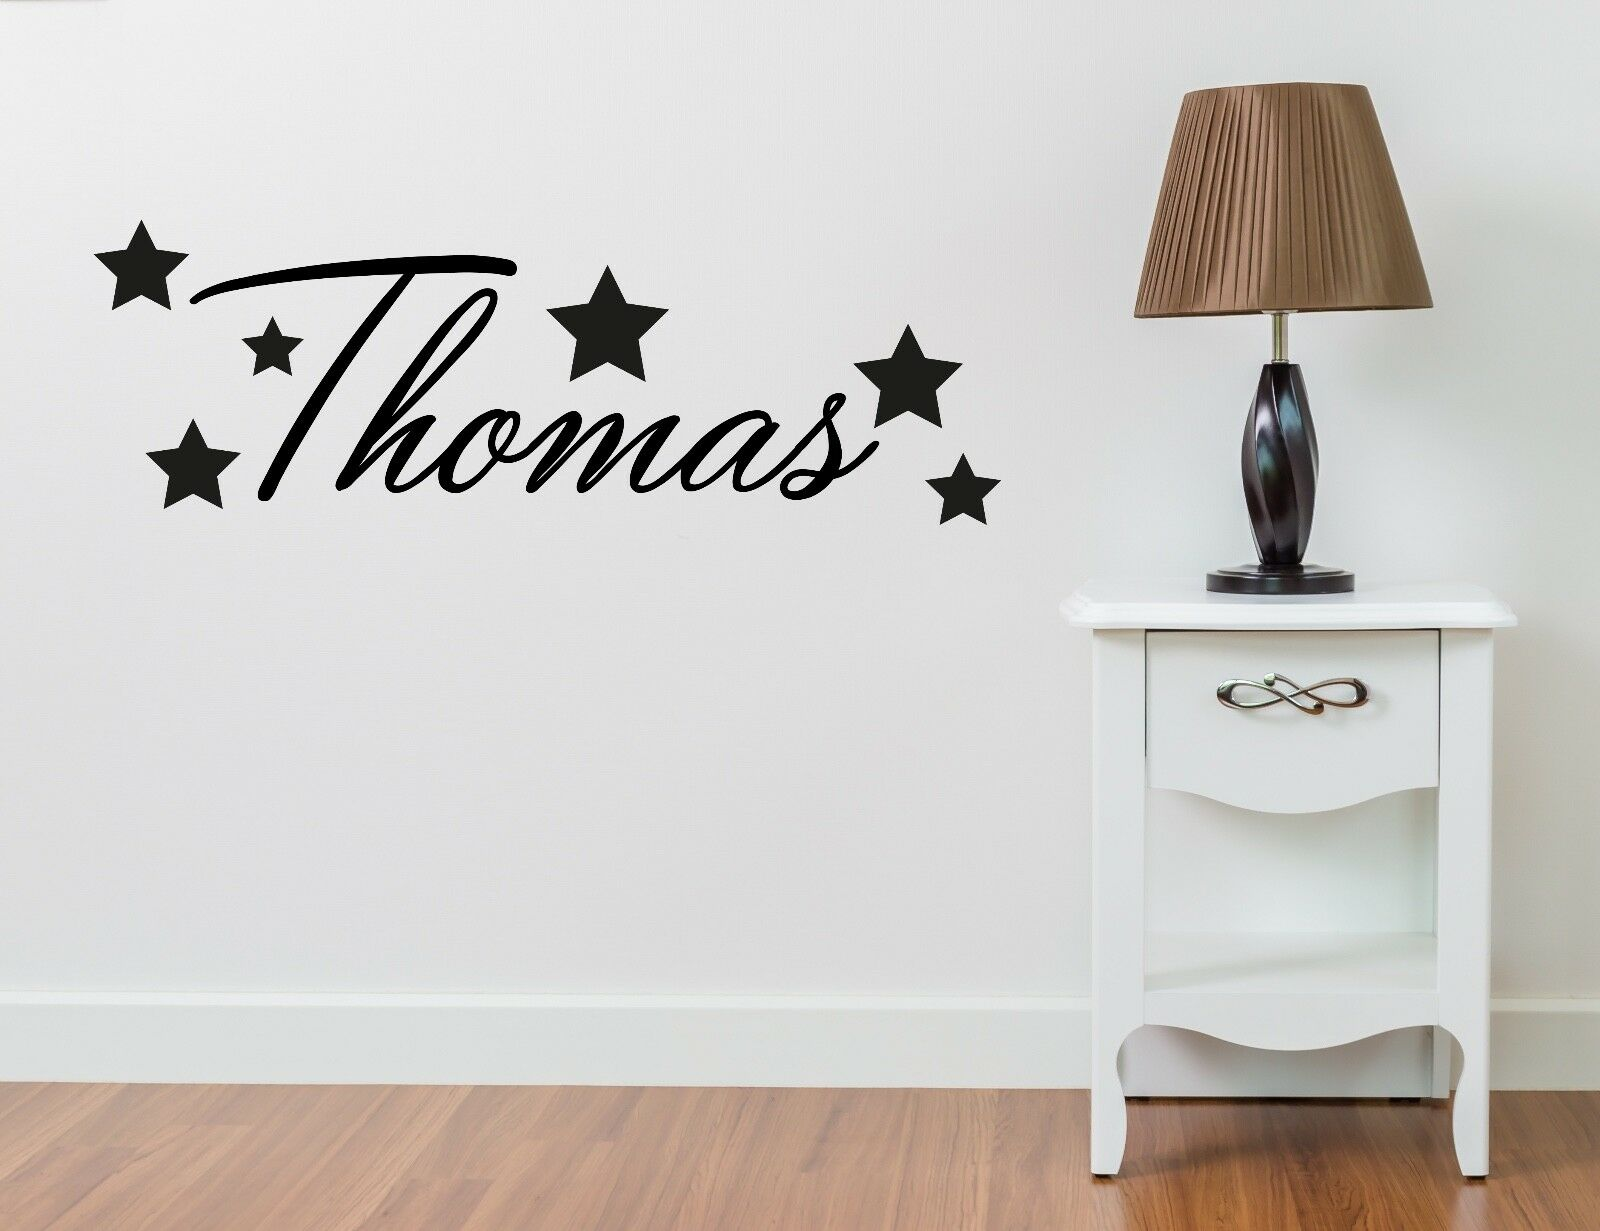 Home Decoration - PERSONALISED NAME STARS WALL ART STICKER DECAL BOYS BEDROOM NURSERY HOME DECOR